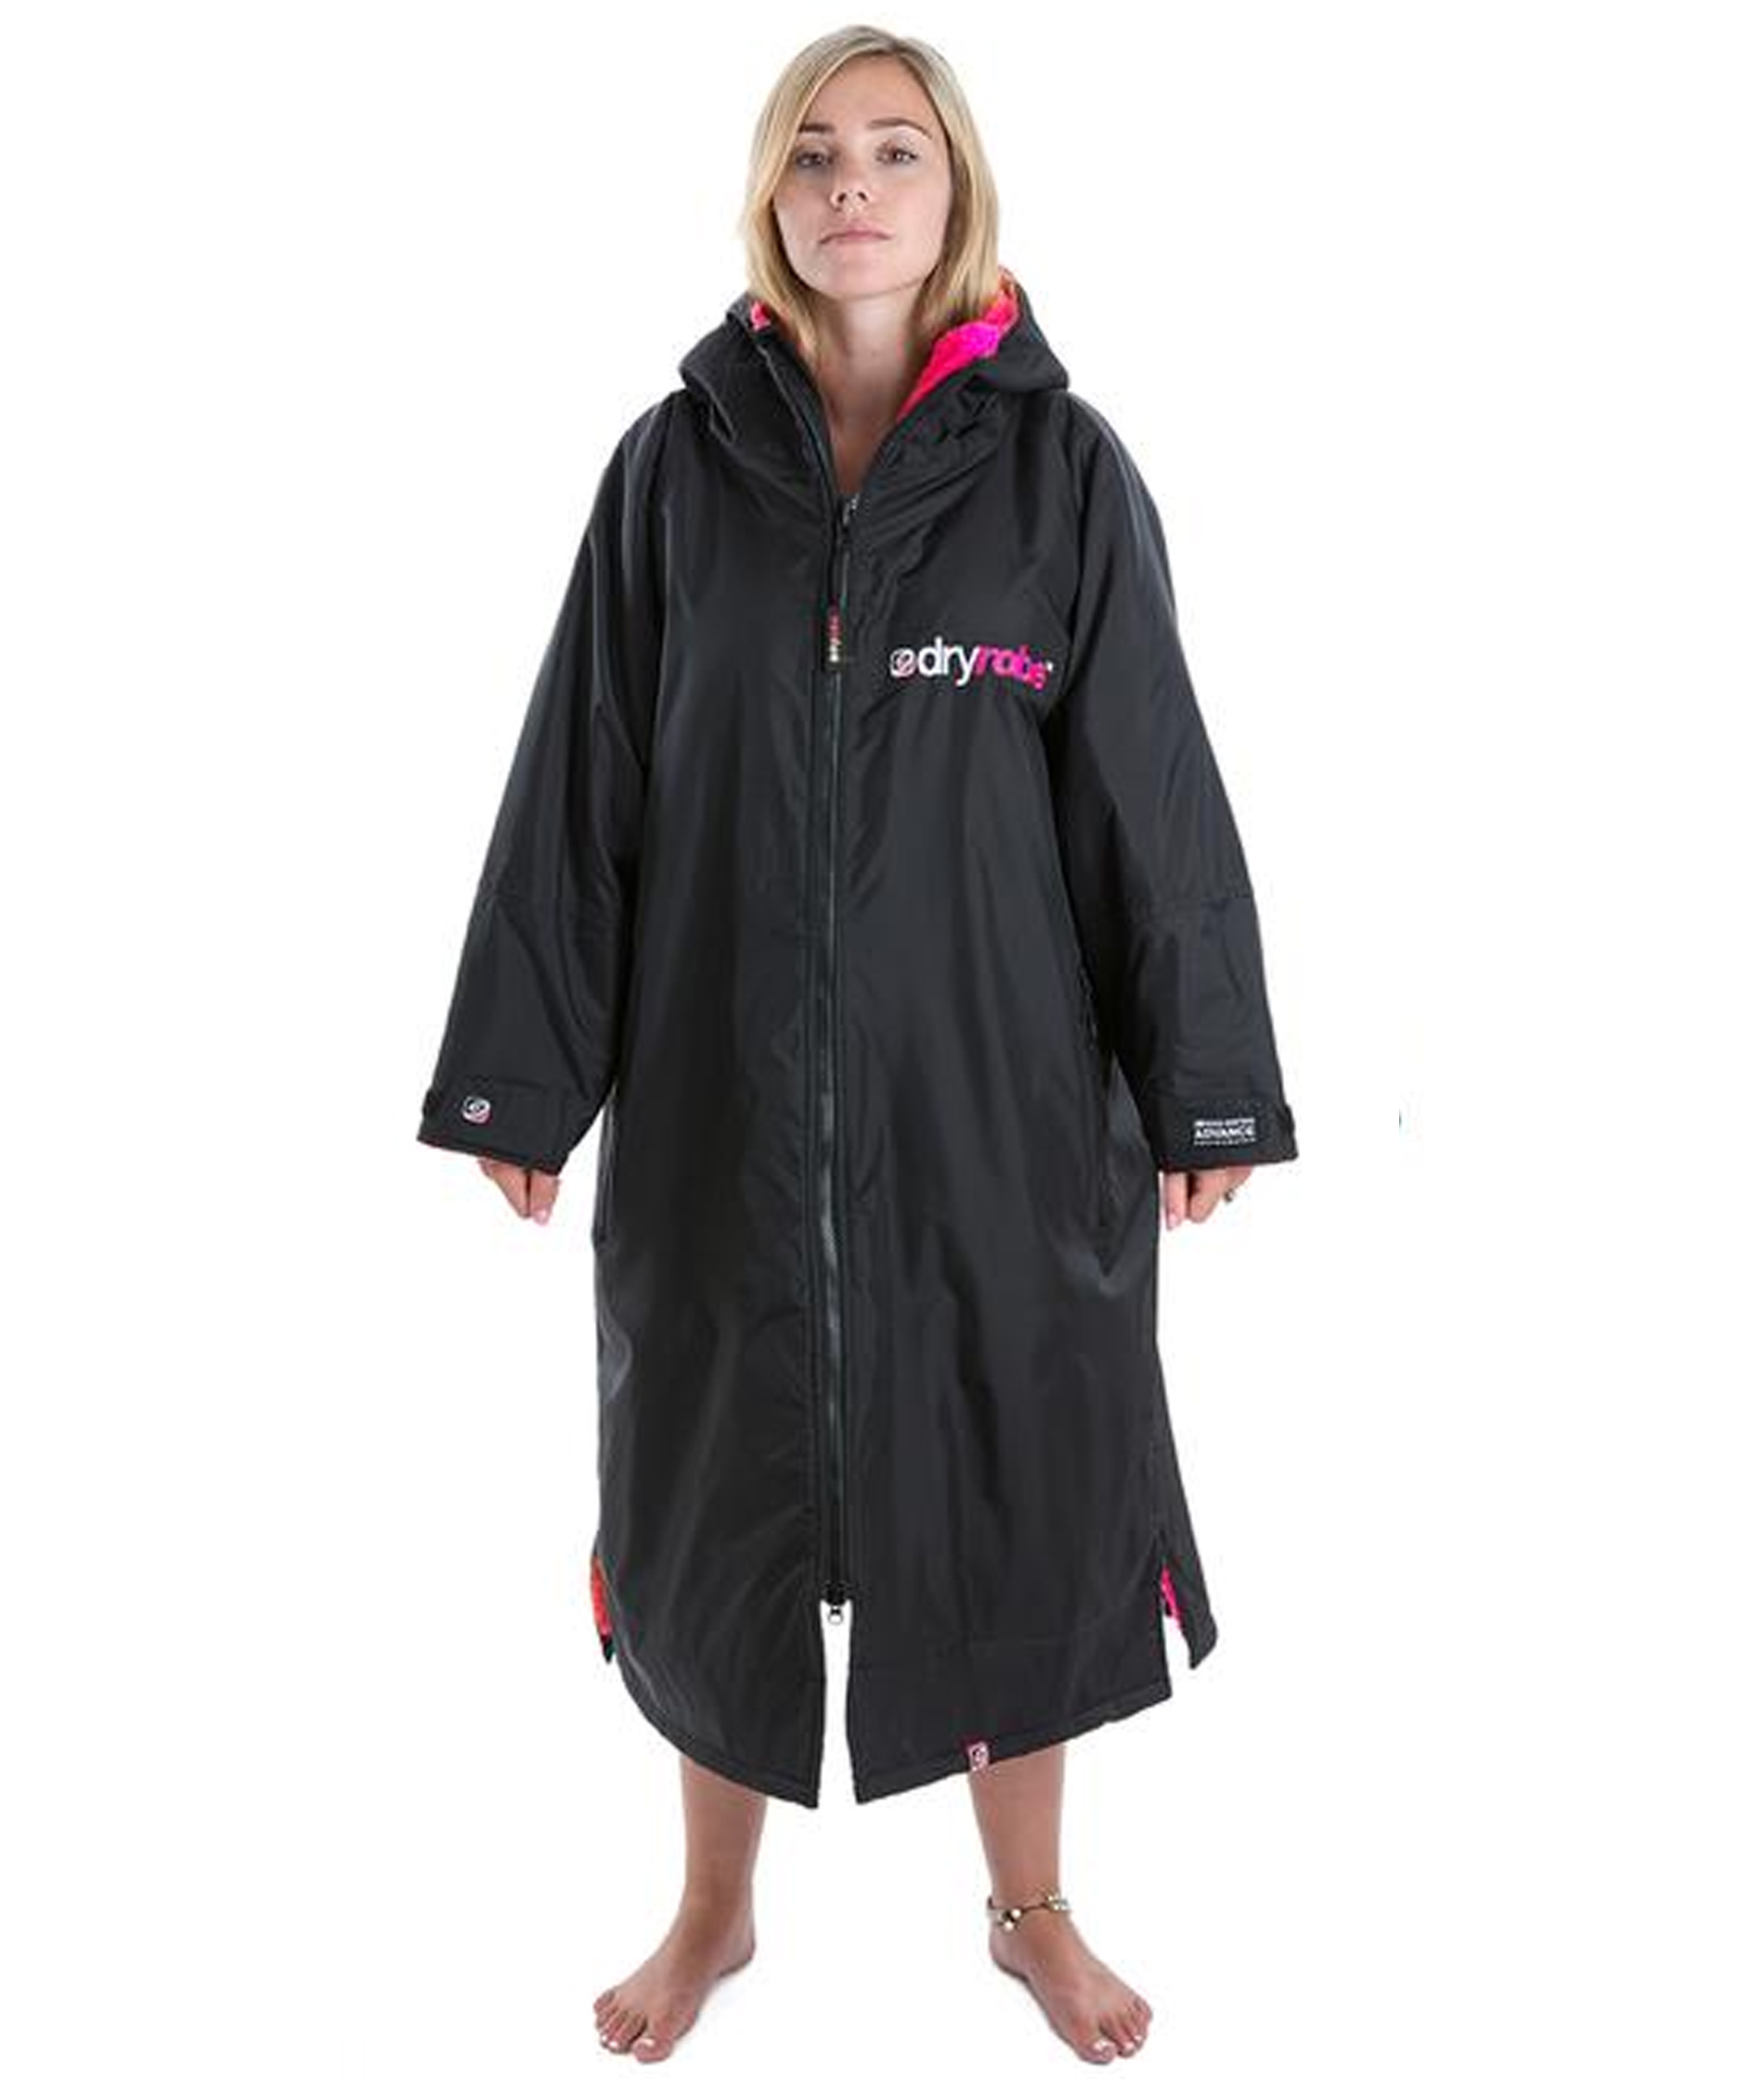 Dryrobe Advance Long Sleeve Black/Pink - Medium